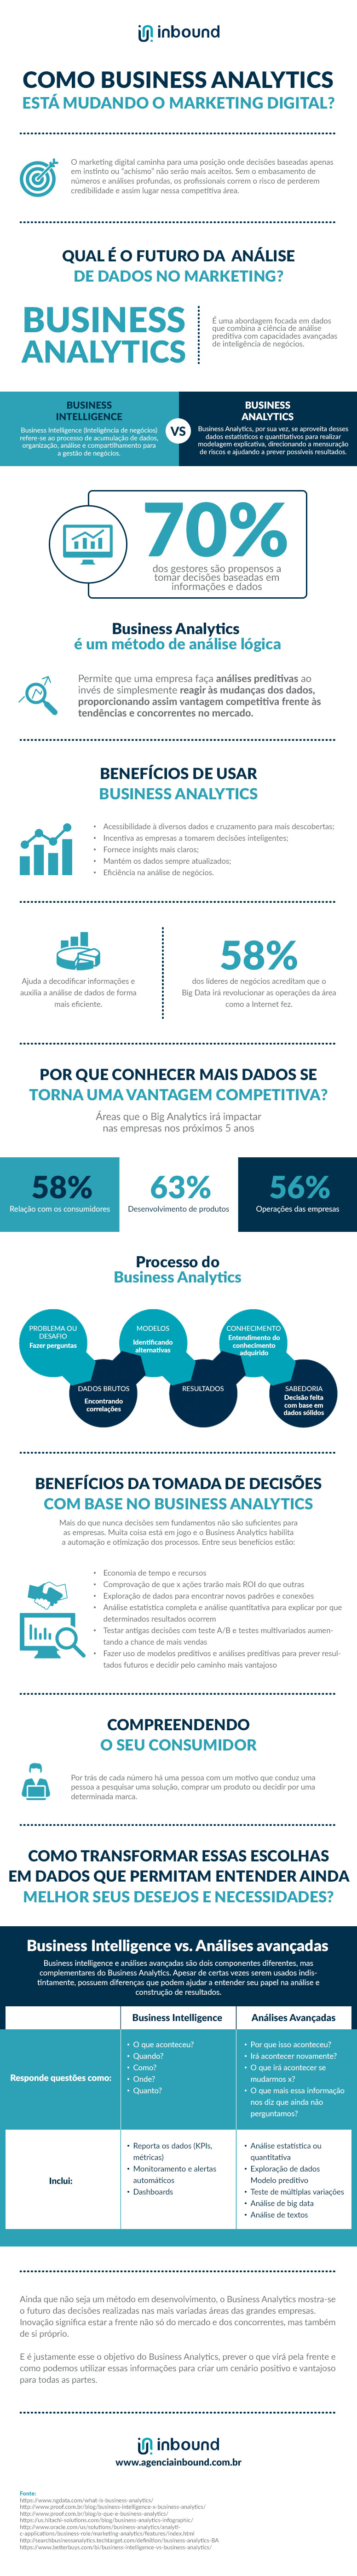 Como Business Analytics está mudando o marketing?